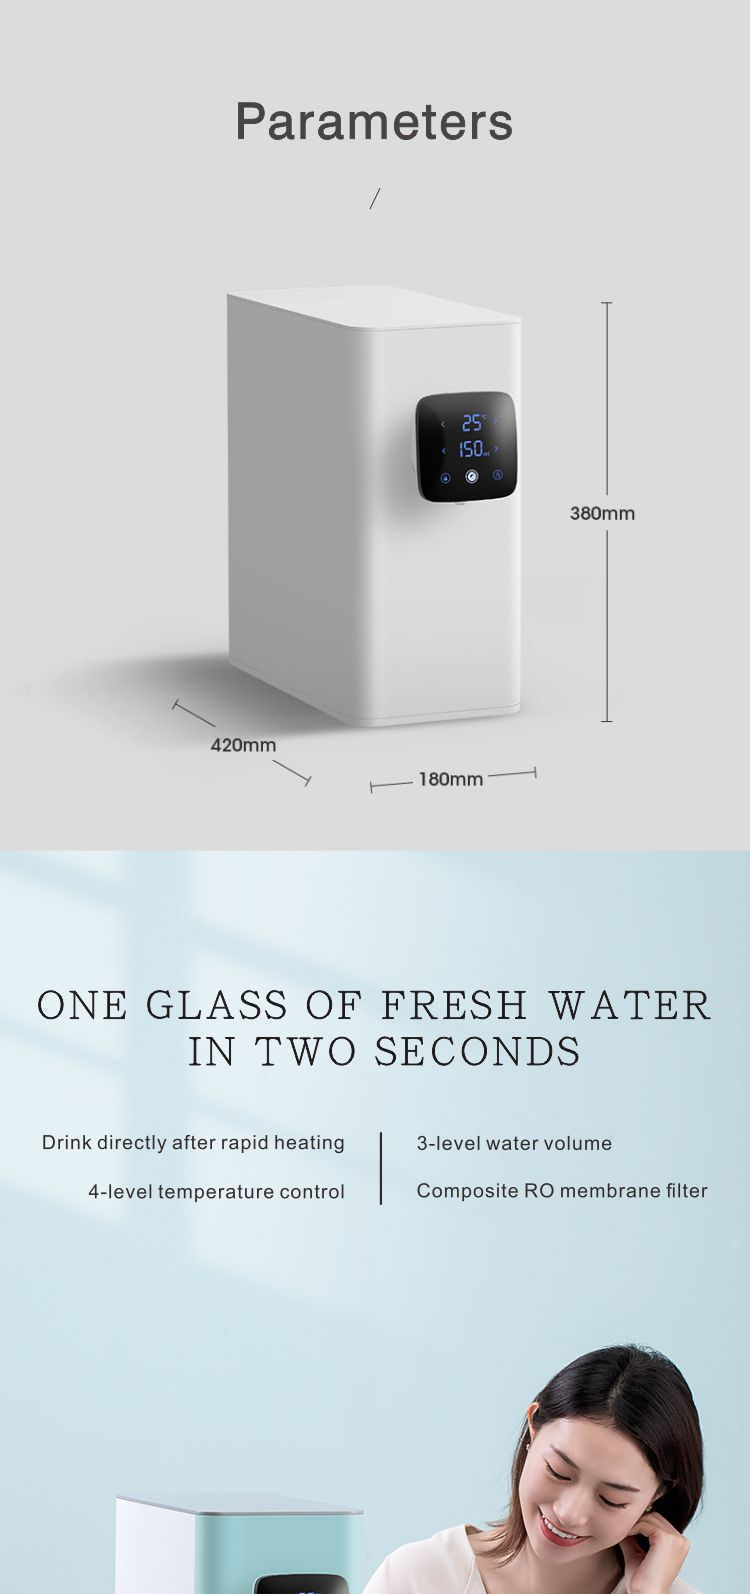 3 in 1 compact custom Yulia home hot and cold water filter tank machine pentair 9 stages ro water filter system